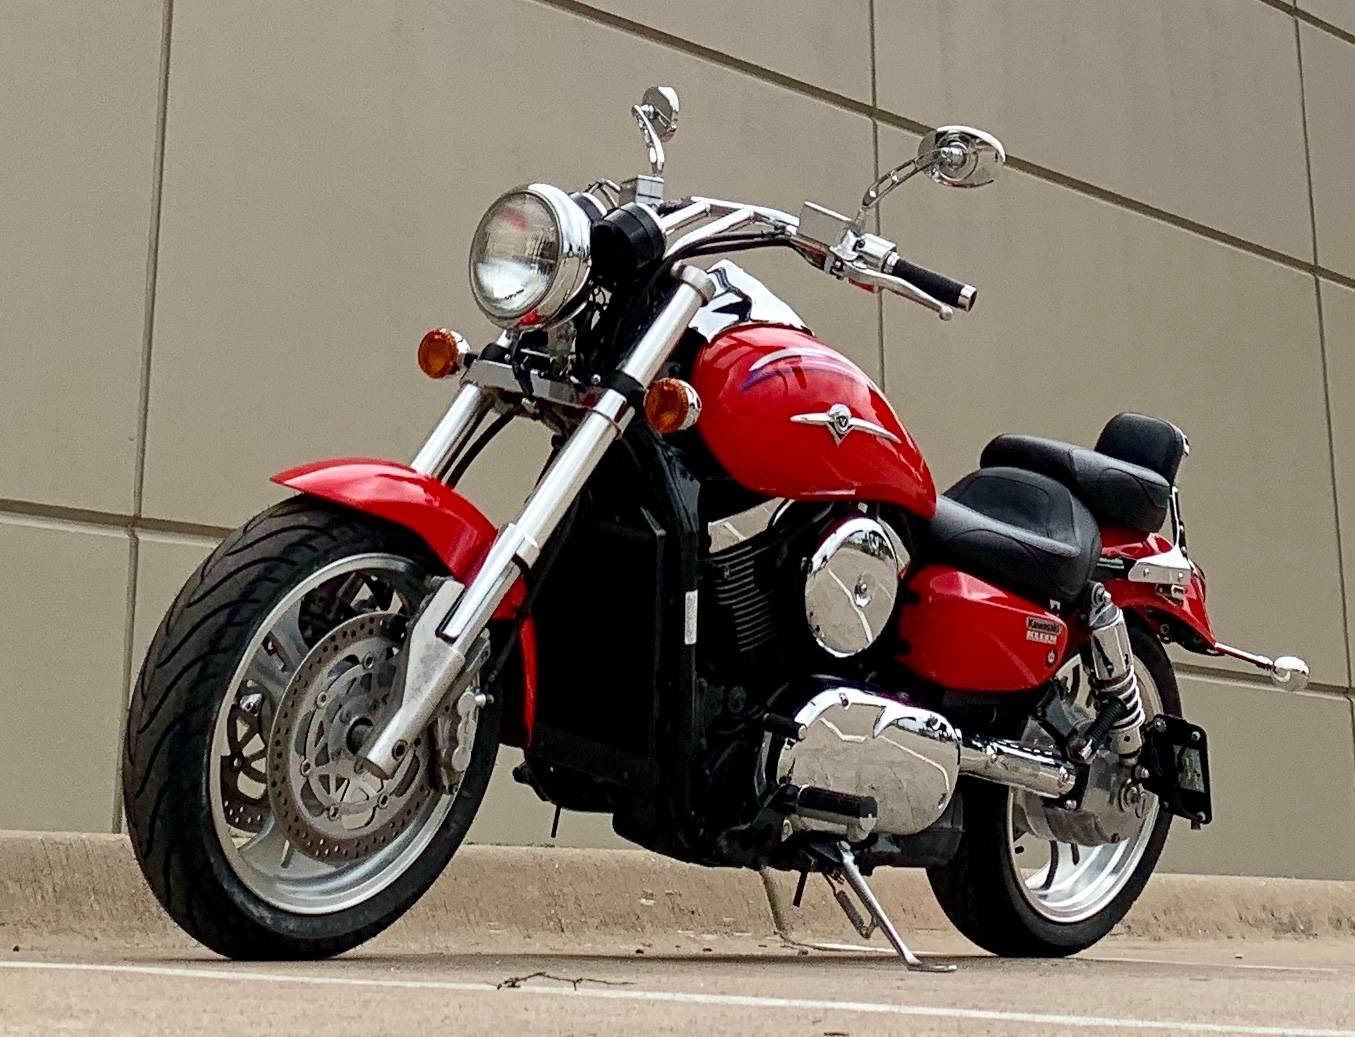 2003 Kawasaki Vulcan 1500 Mean Streak™ in Plano, Texas - Photo 4